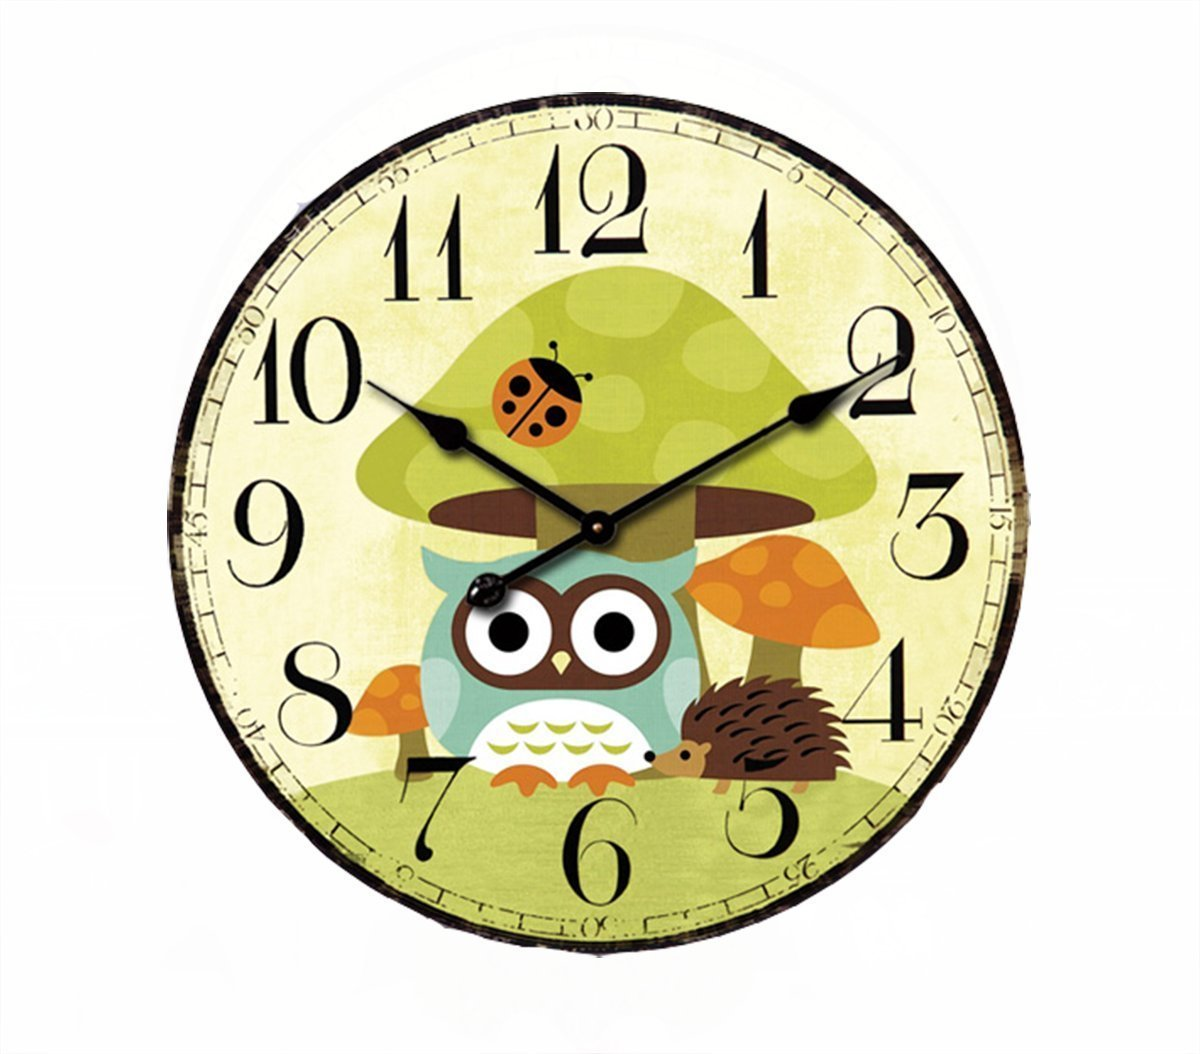 Cute Mushrooms Animal 14'' Wall Clock, Eruner Family Decoration French Country 14-Inch Wood Clock Painted Retro Style for Children's Room(14'' Mushrooms, M2)